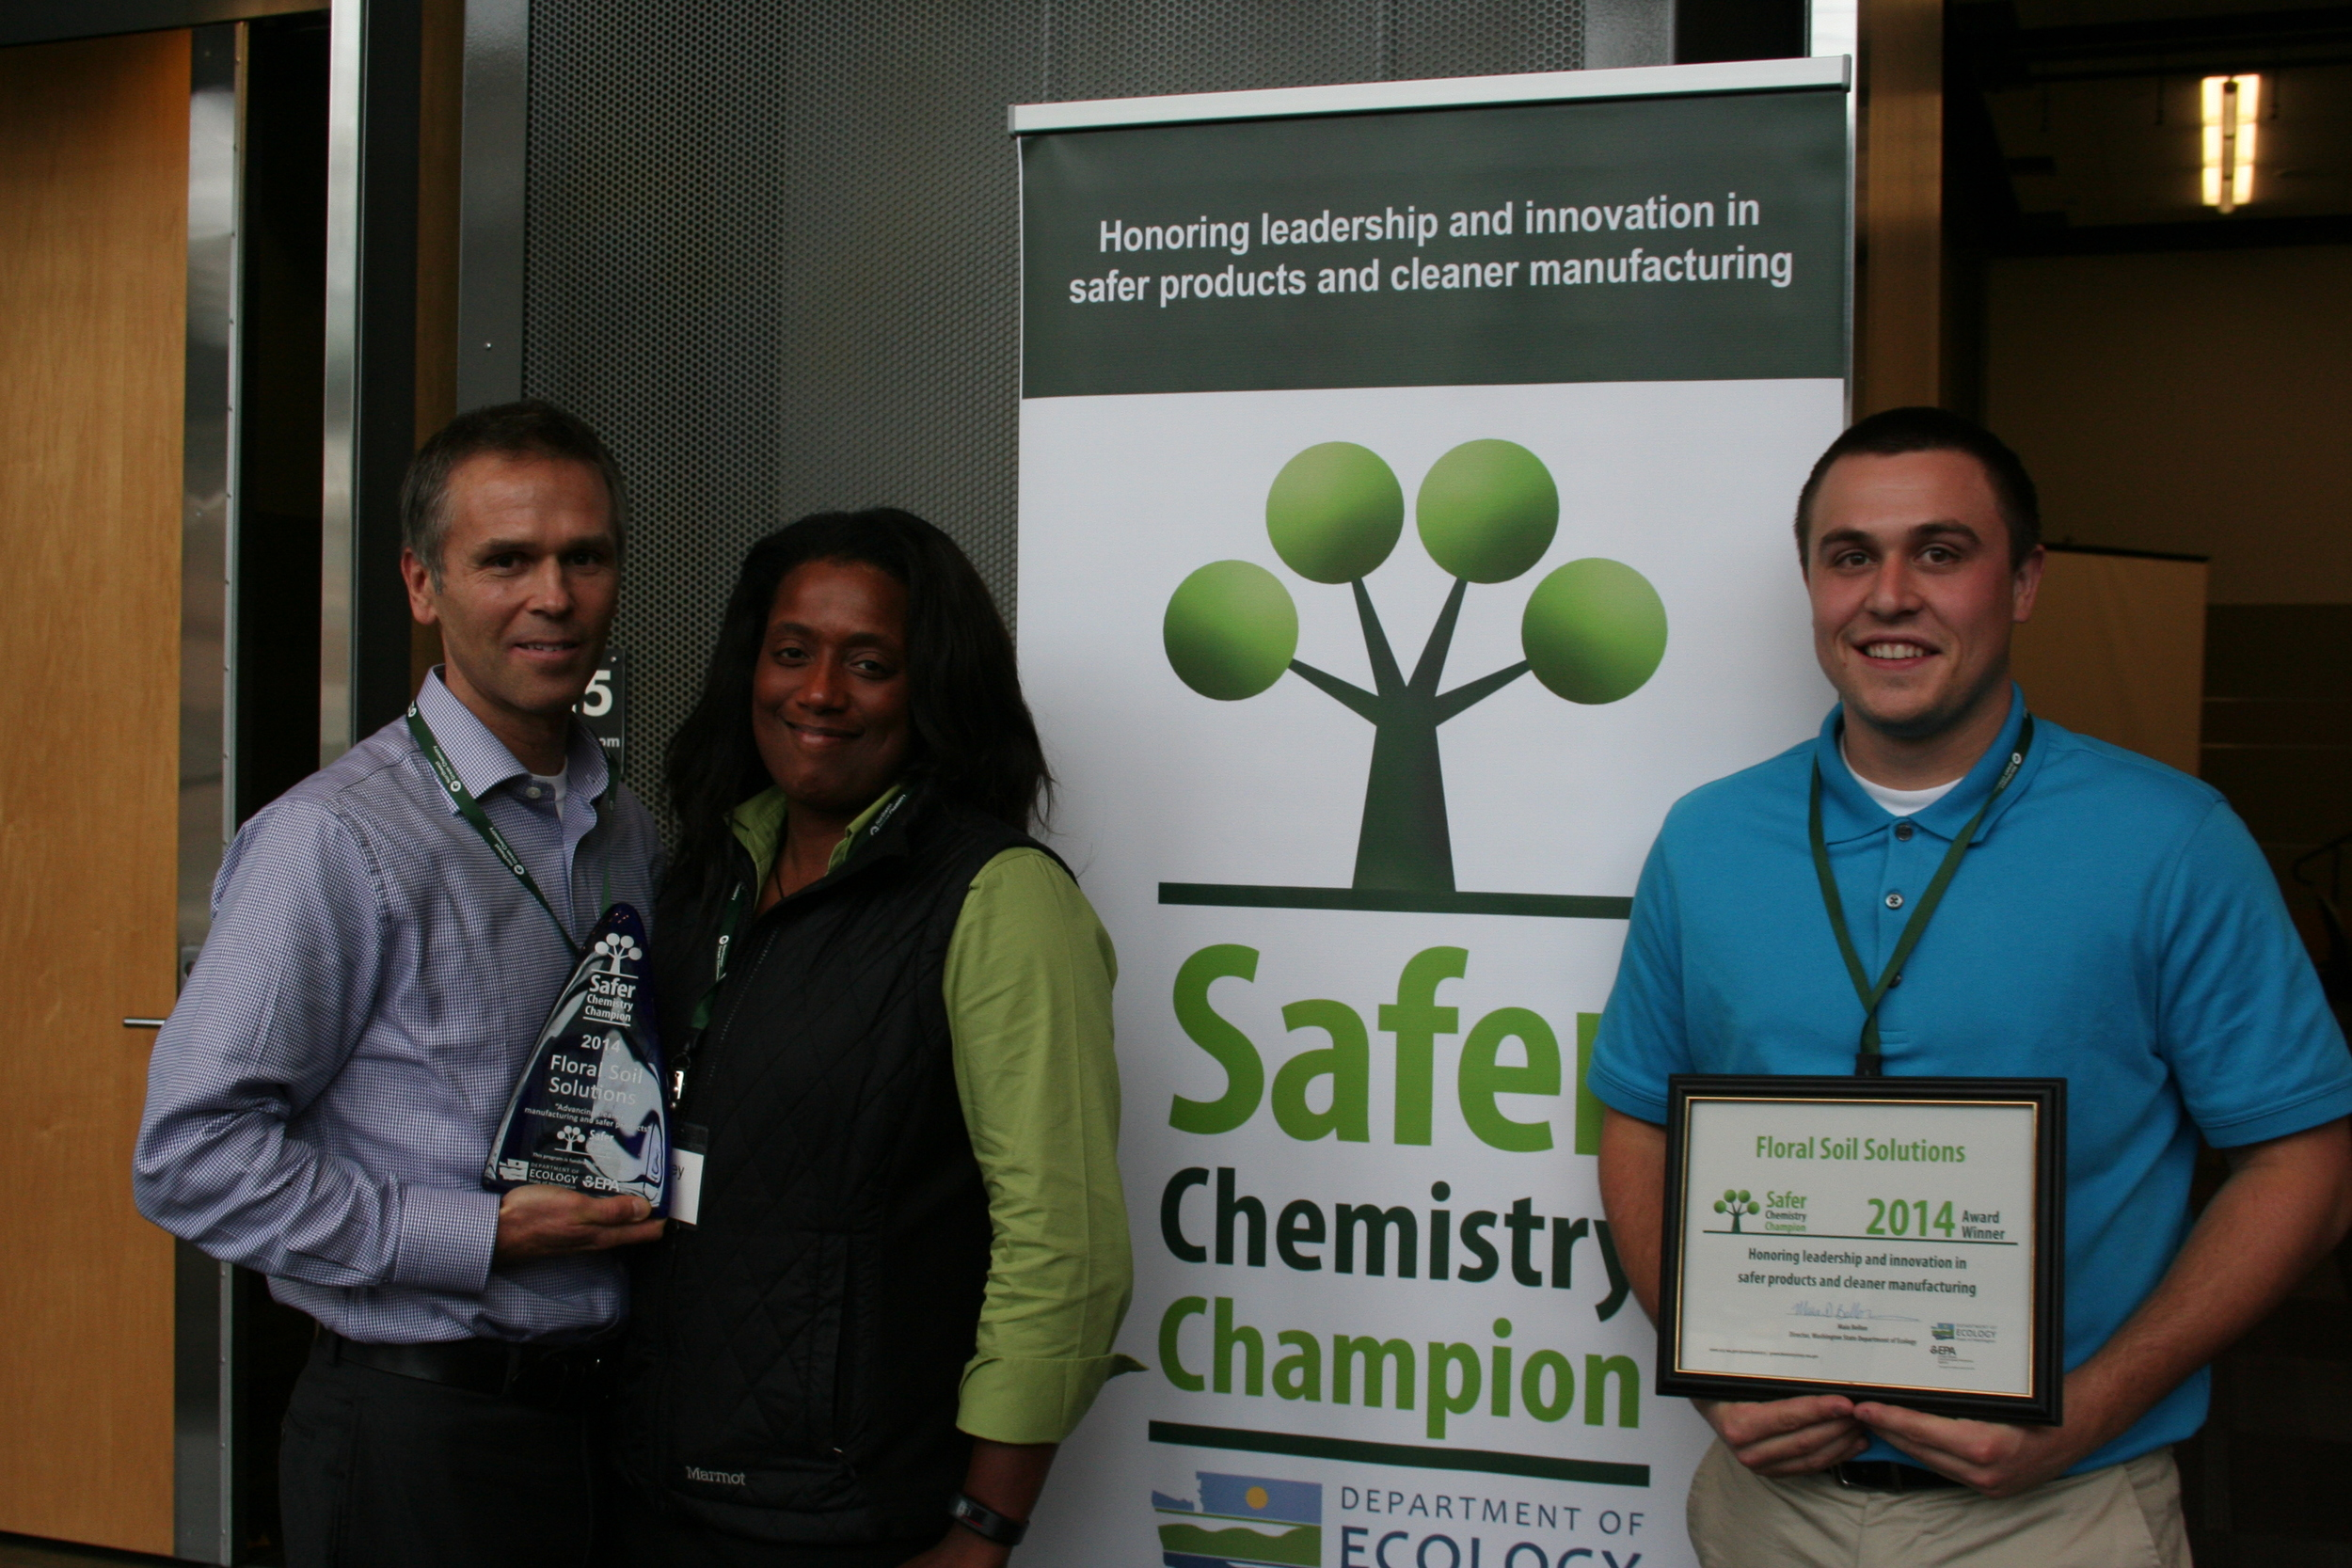 Pictured from left to right - Pete Kegel (GM), Mickey Blake (Floral Soil Inventor & CEO), Reid Jones (Director of Operations)